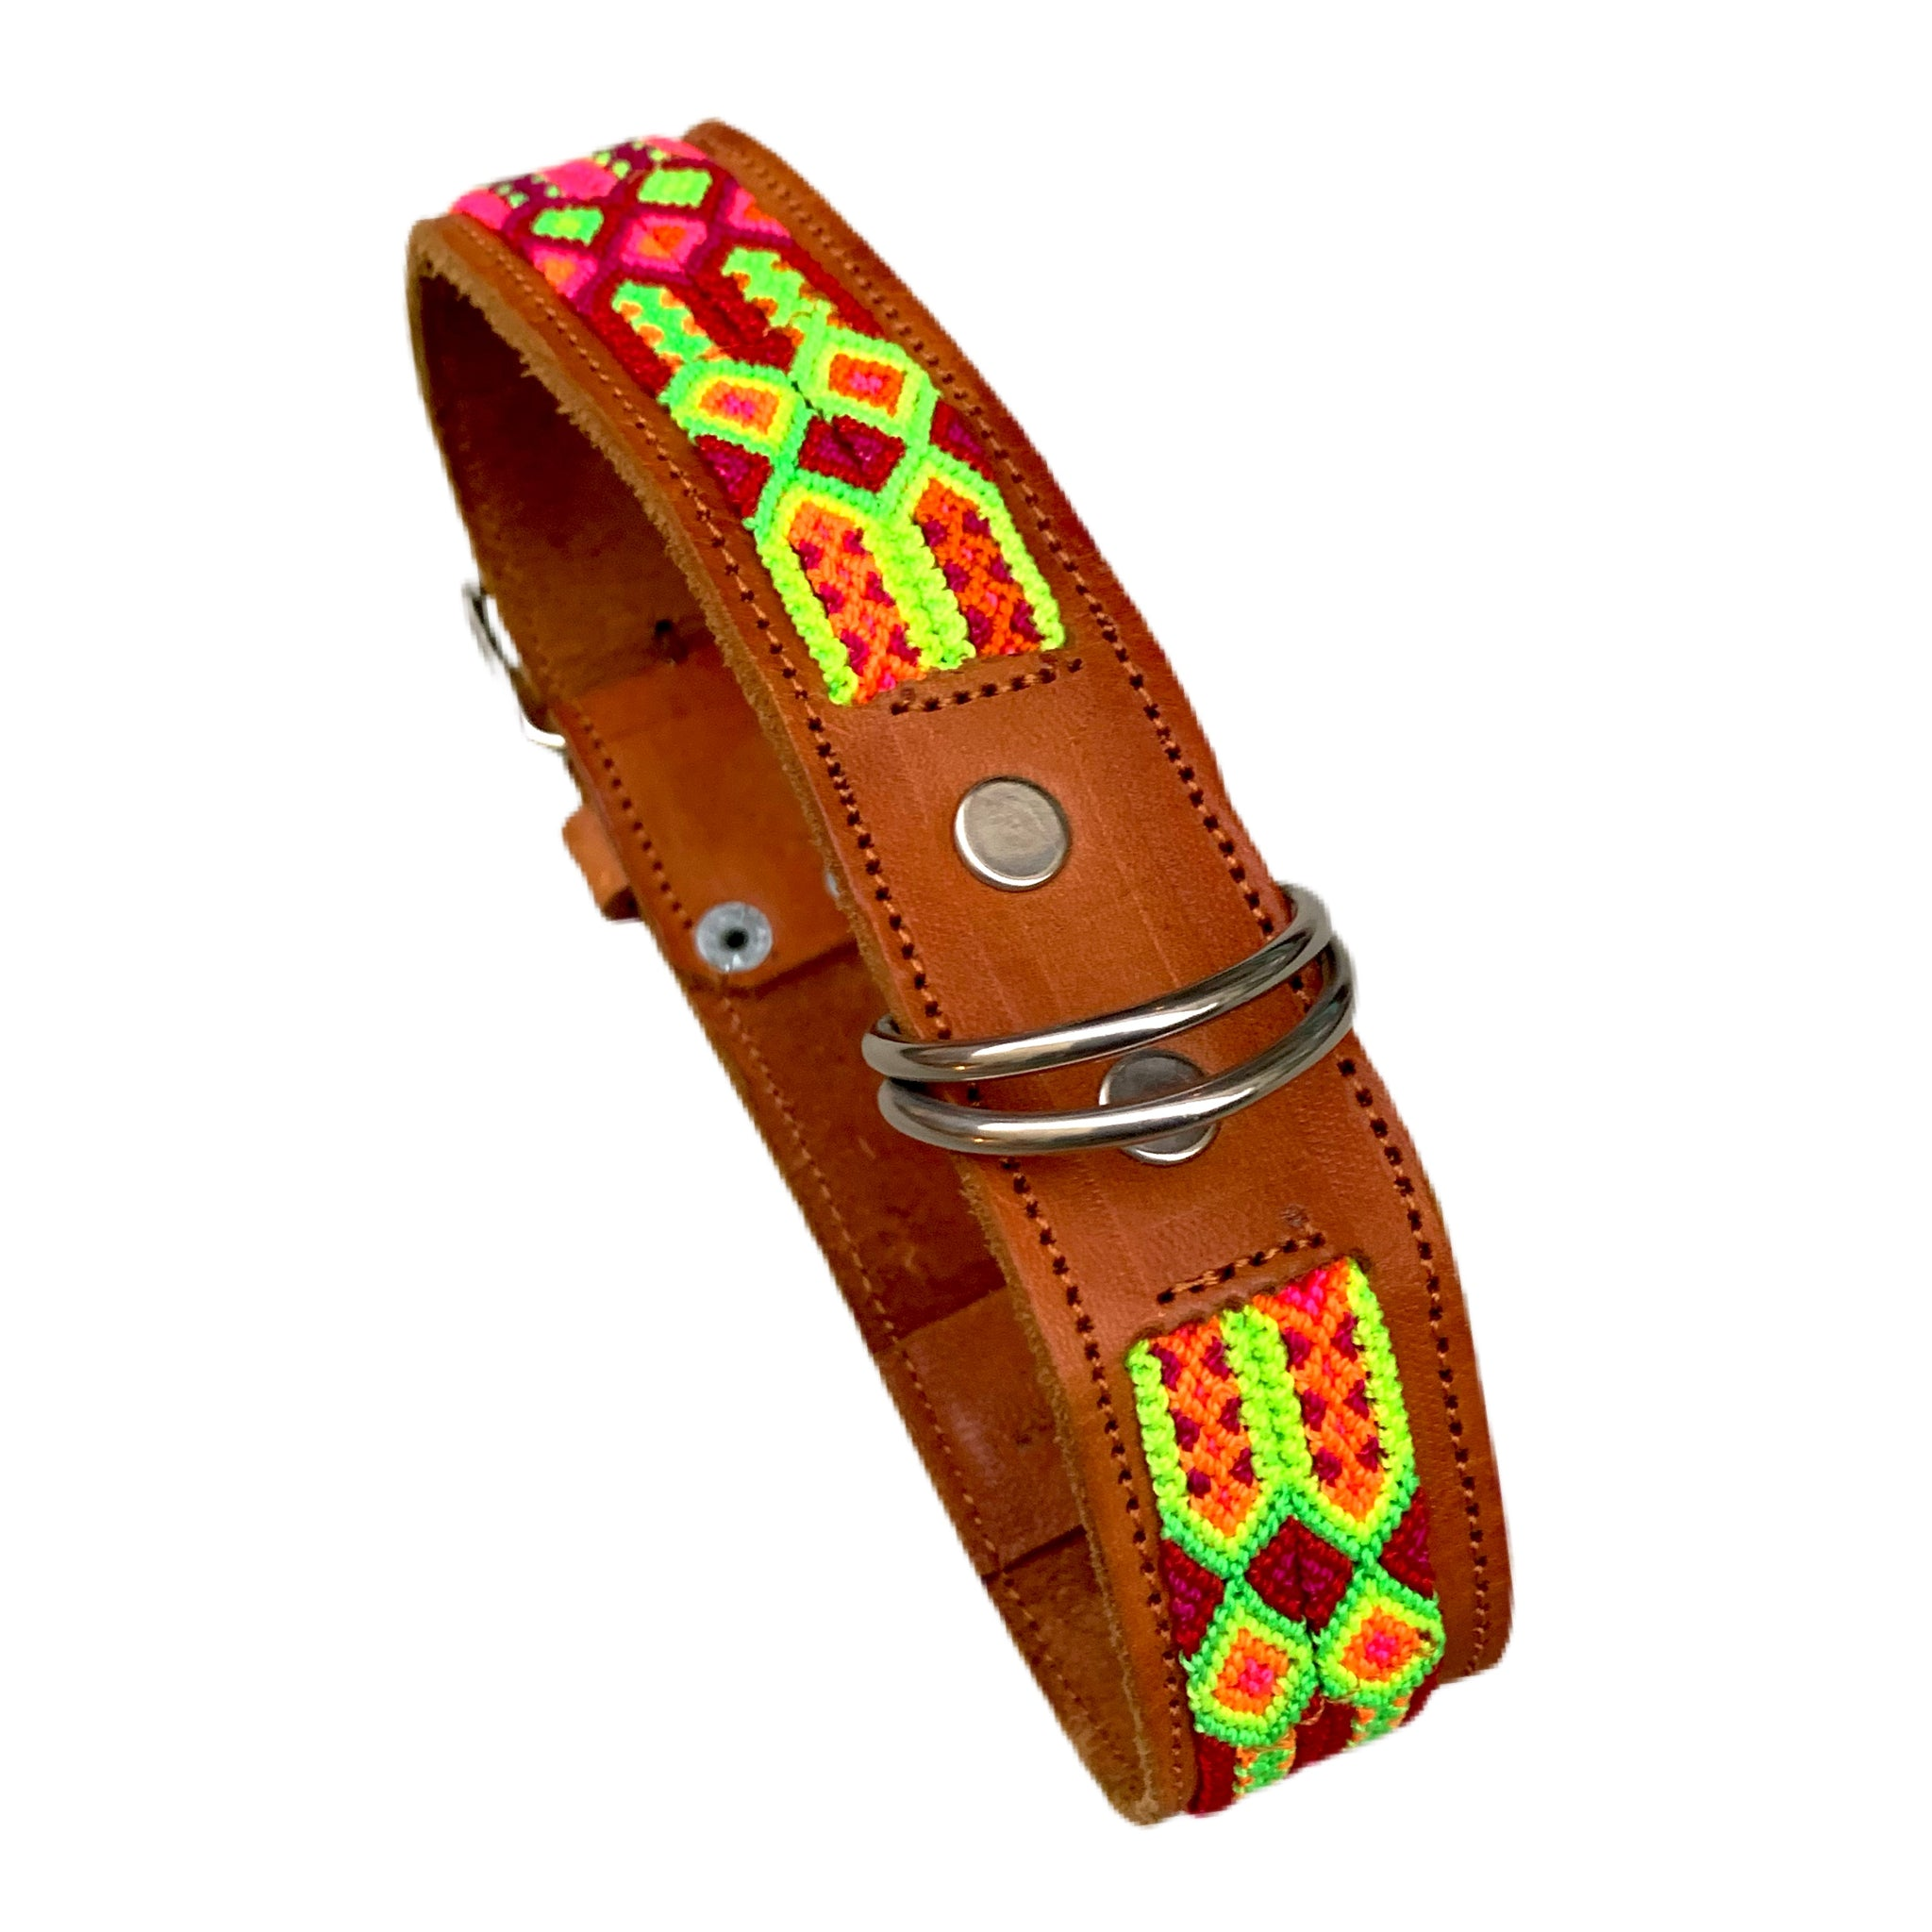 "Bright Neon Friendship Bracelet Style Leather Dog Collars From Guatemala - Medium 17""-20"""